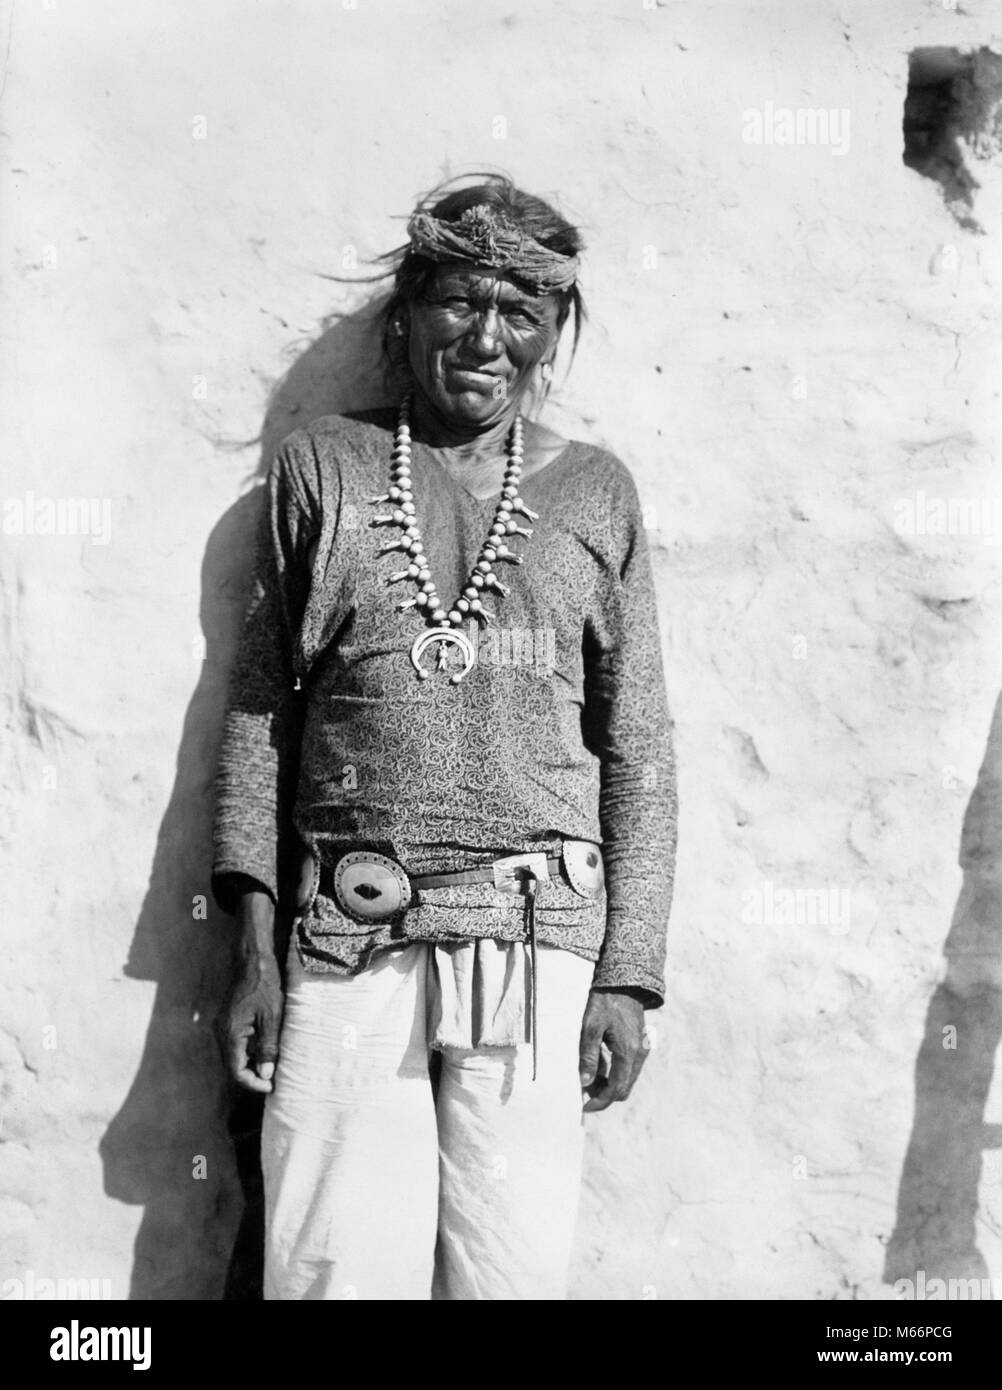 1890 1890s PORTRAIT NATIVE AMERICAN HOPI INDIAN MAN SMILING WEARING SQUASH BLOSSOM NECKLACE LOOKING AT CAMERA - - Stock Image